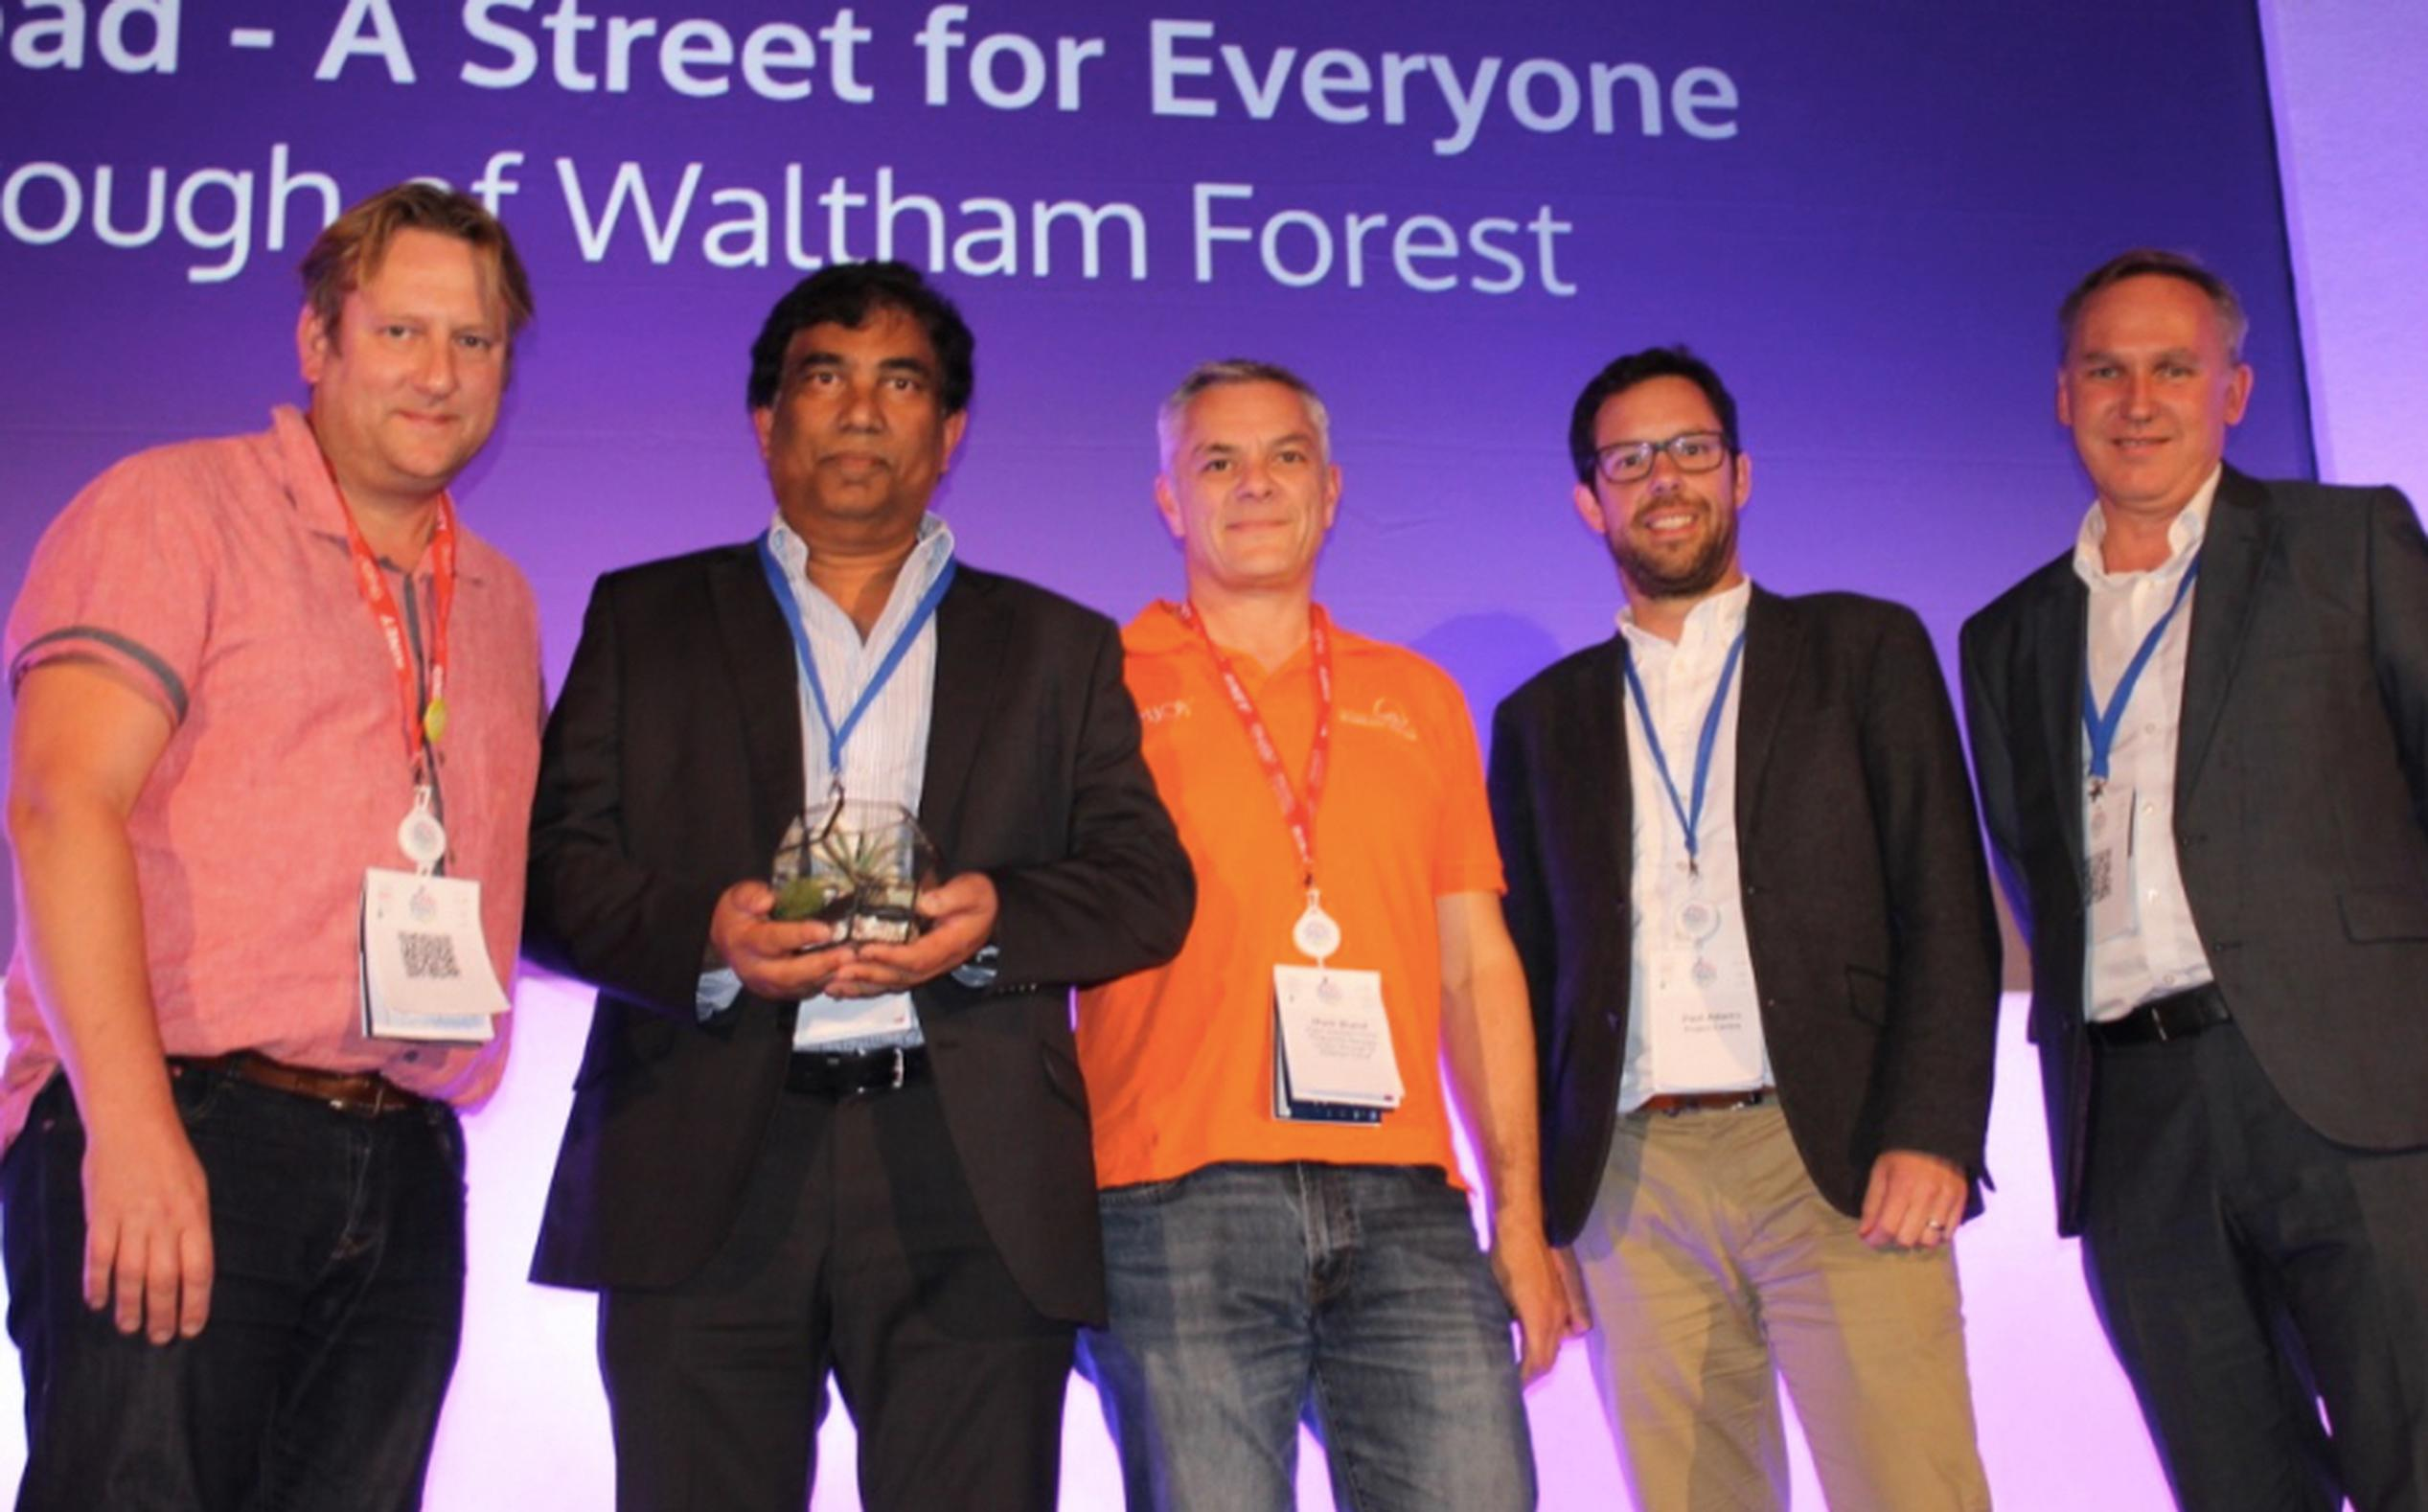 Waltham Forest won the Proposal of the Year award